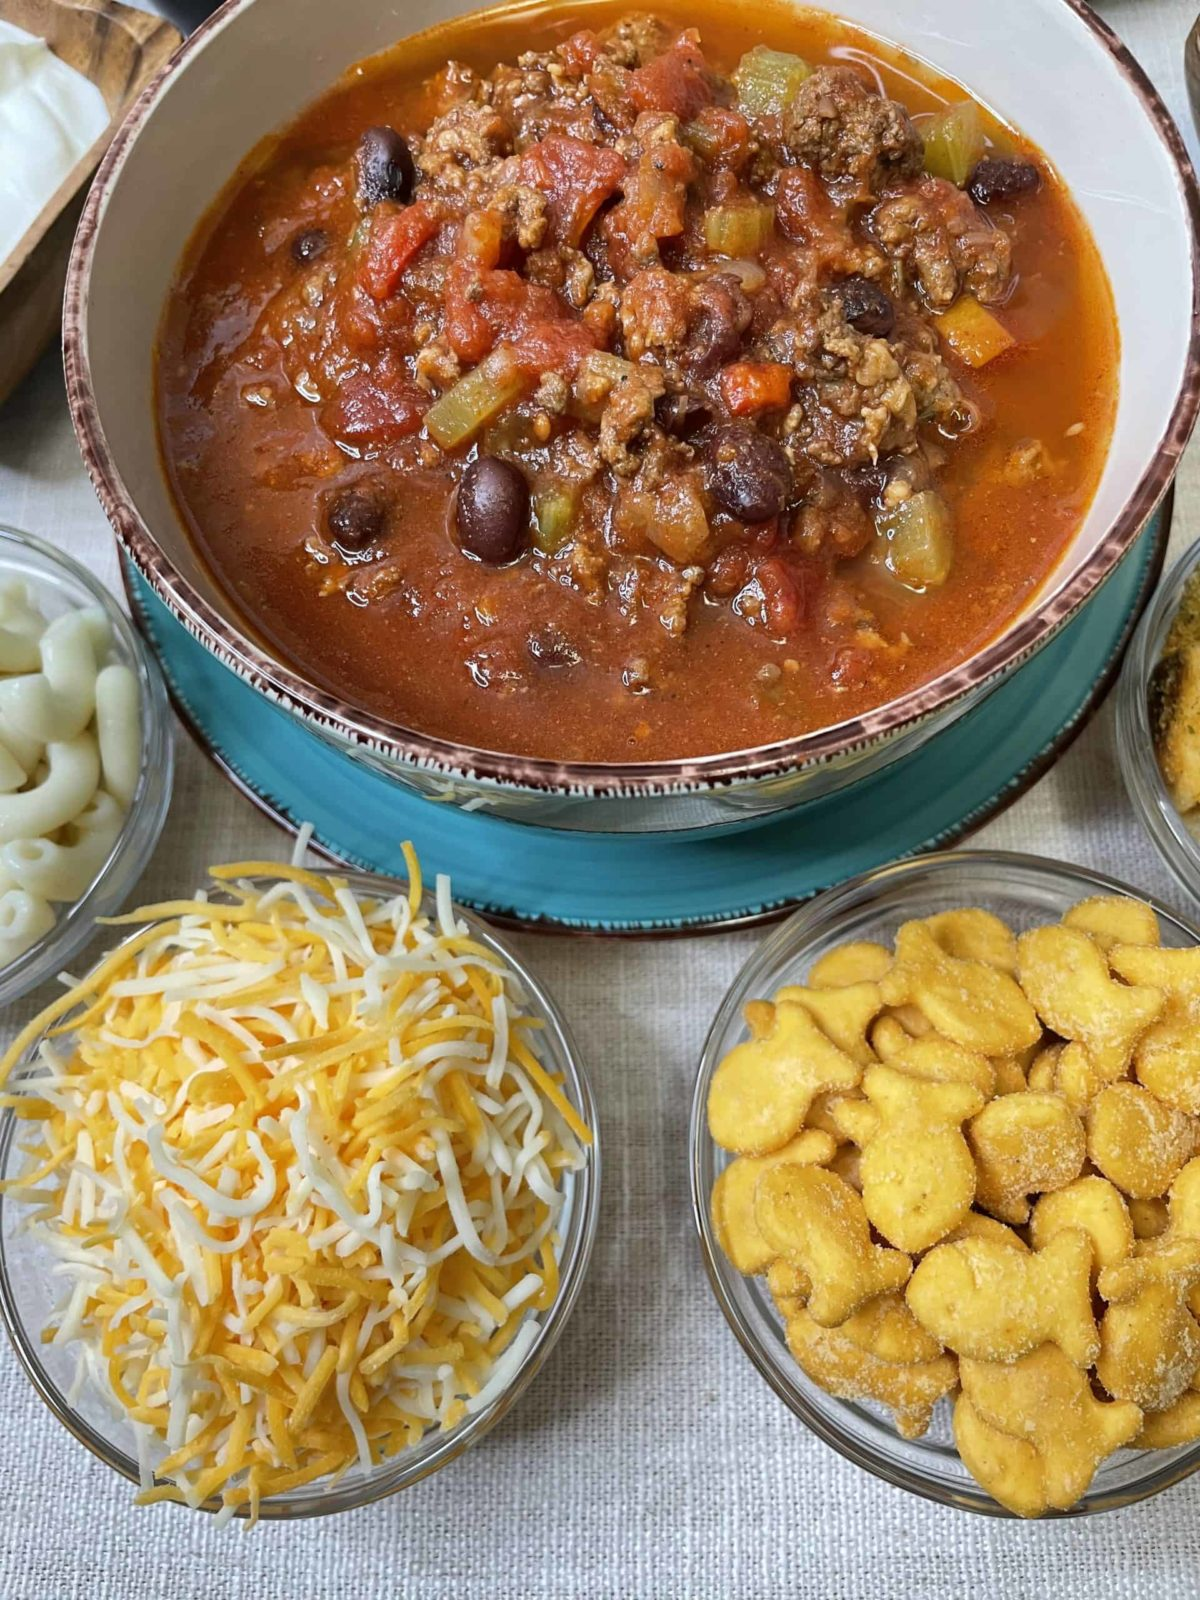 Instant Pot Slow Cooked Chili with sides.